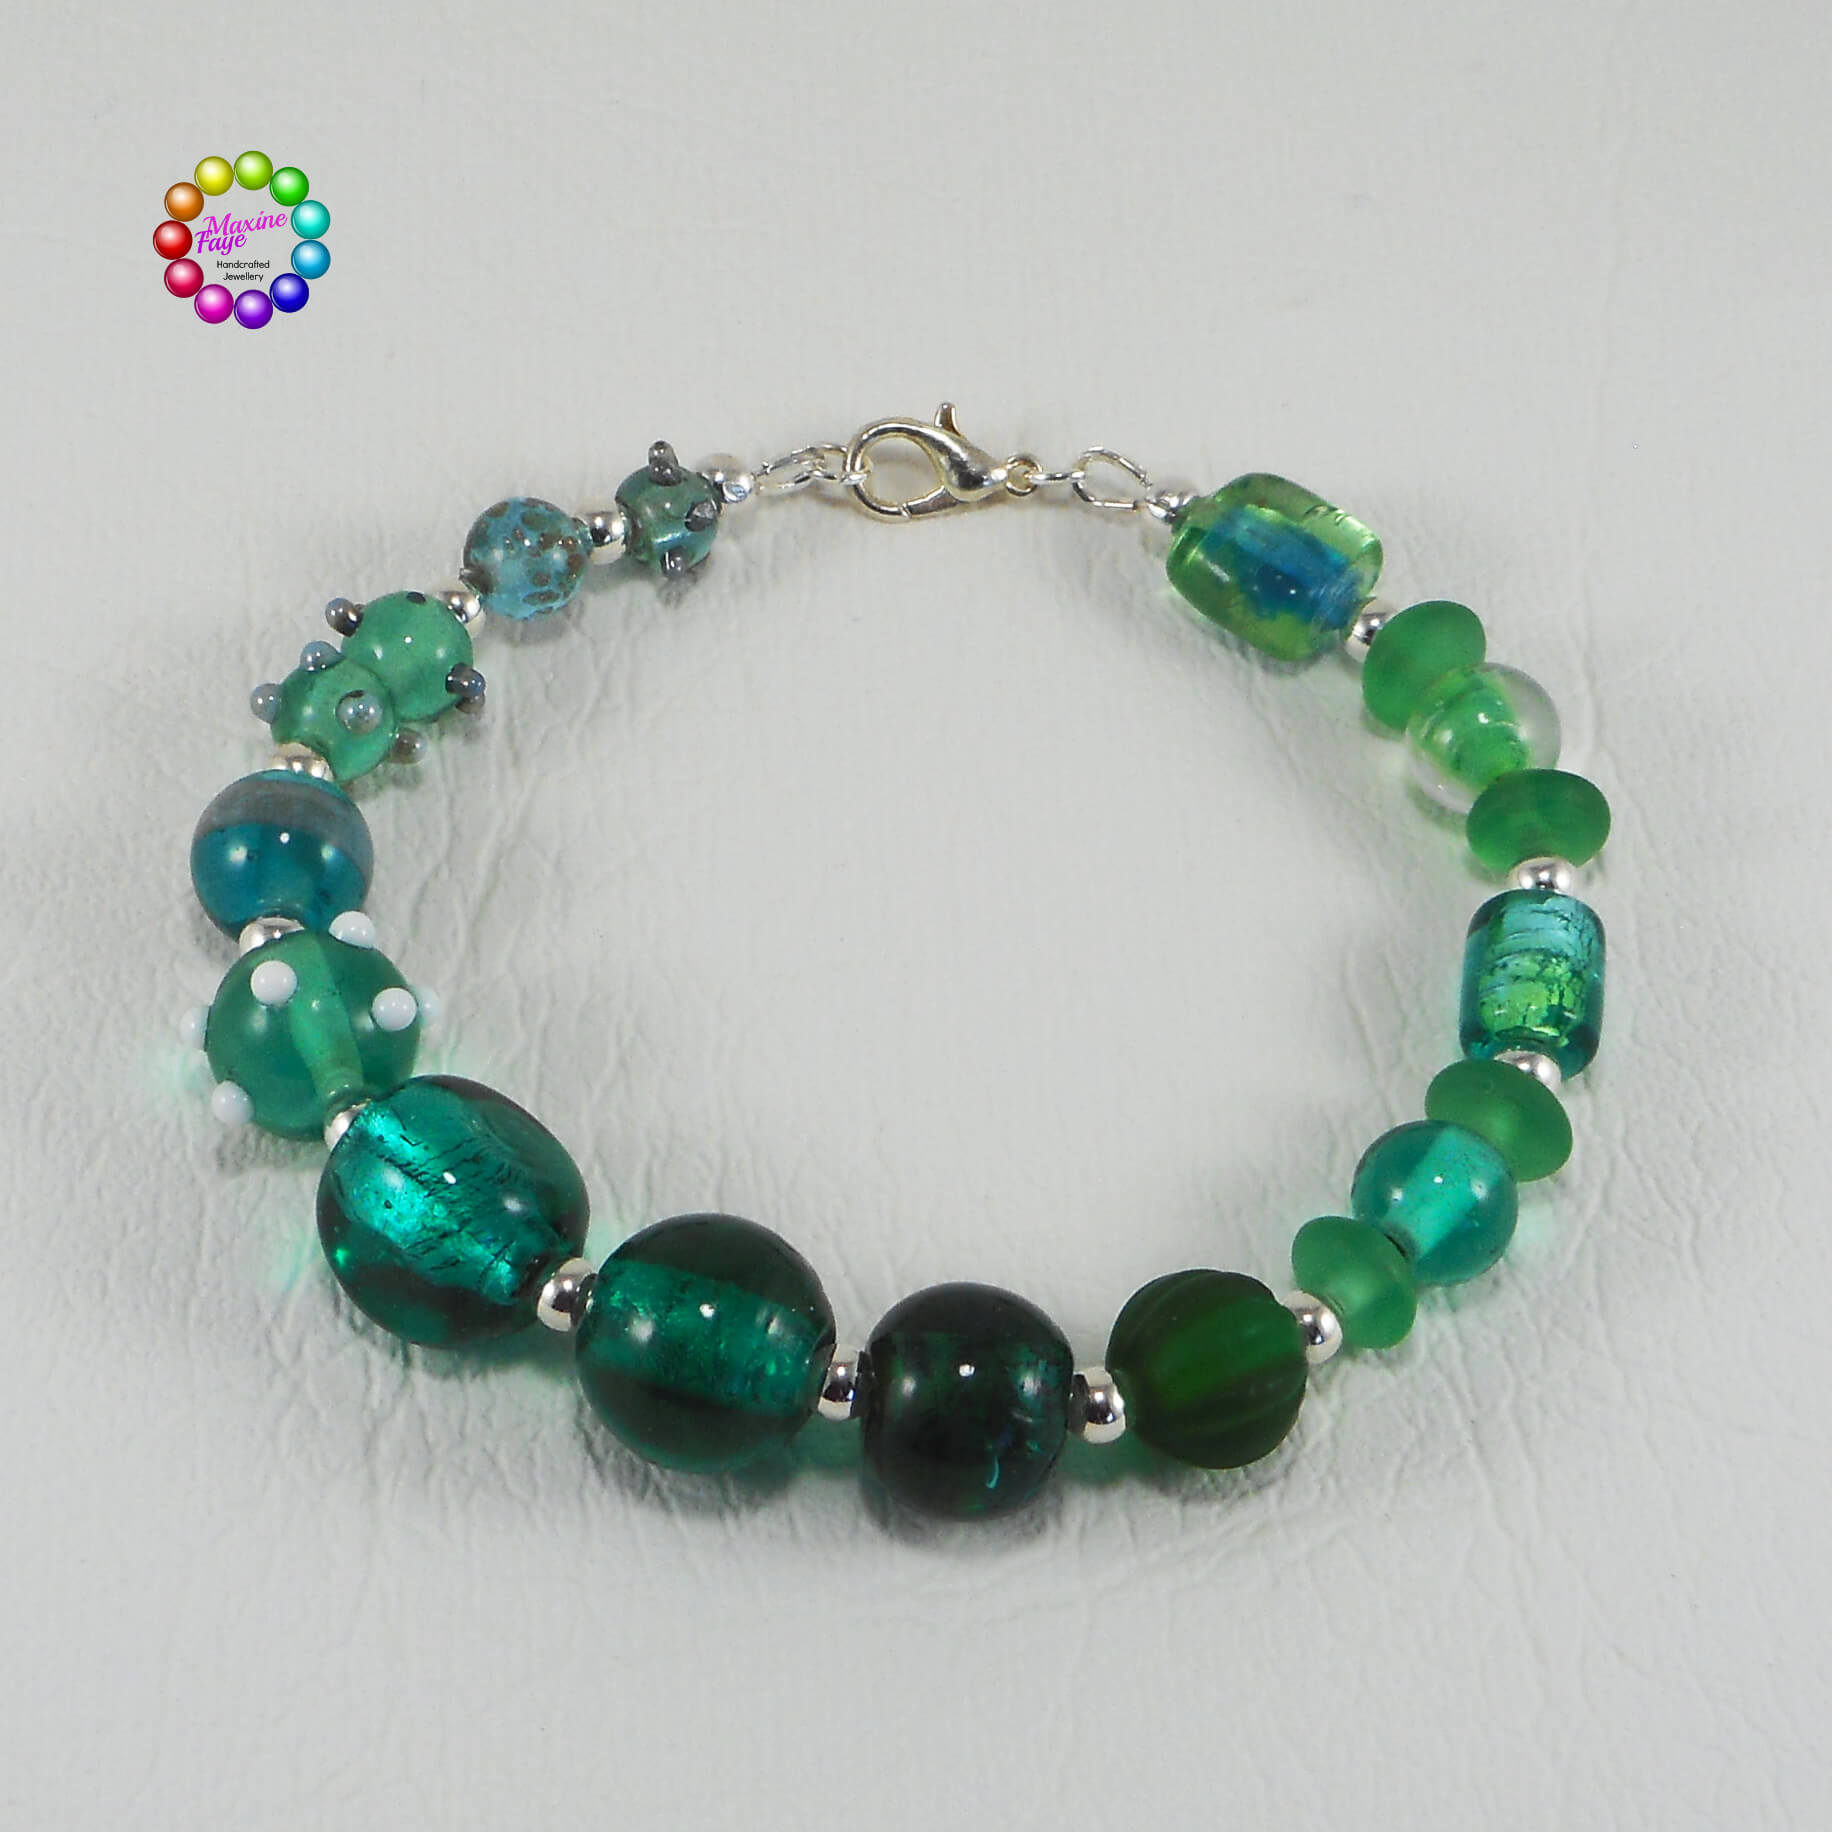 A collection of gorgeous deep teal glass beads are the feature of this beautiful bracelet. Aqua, Emerald and Seafoam greens